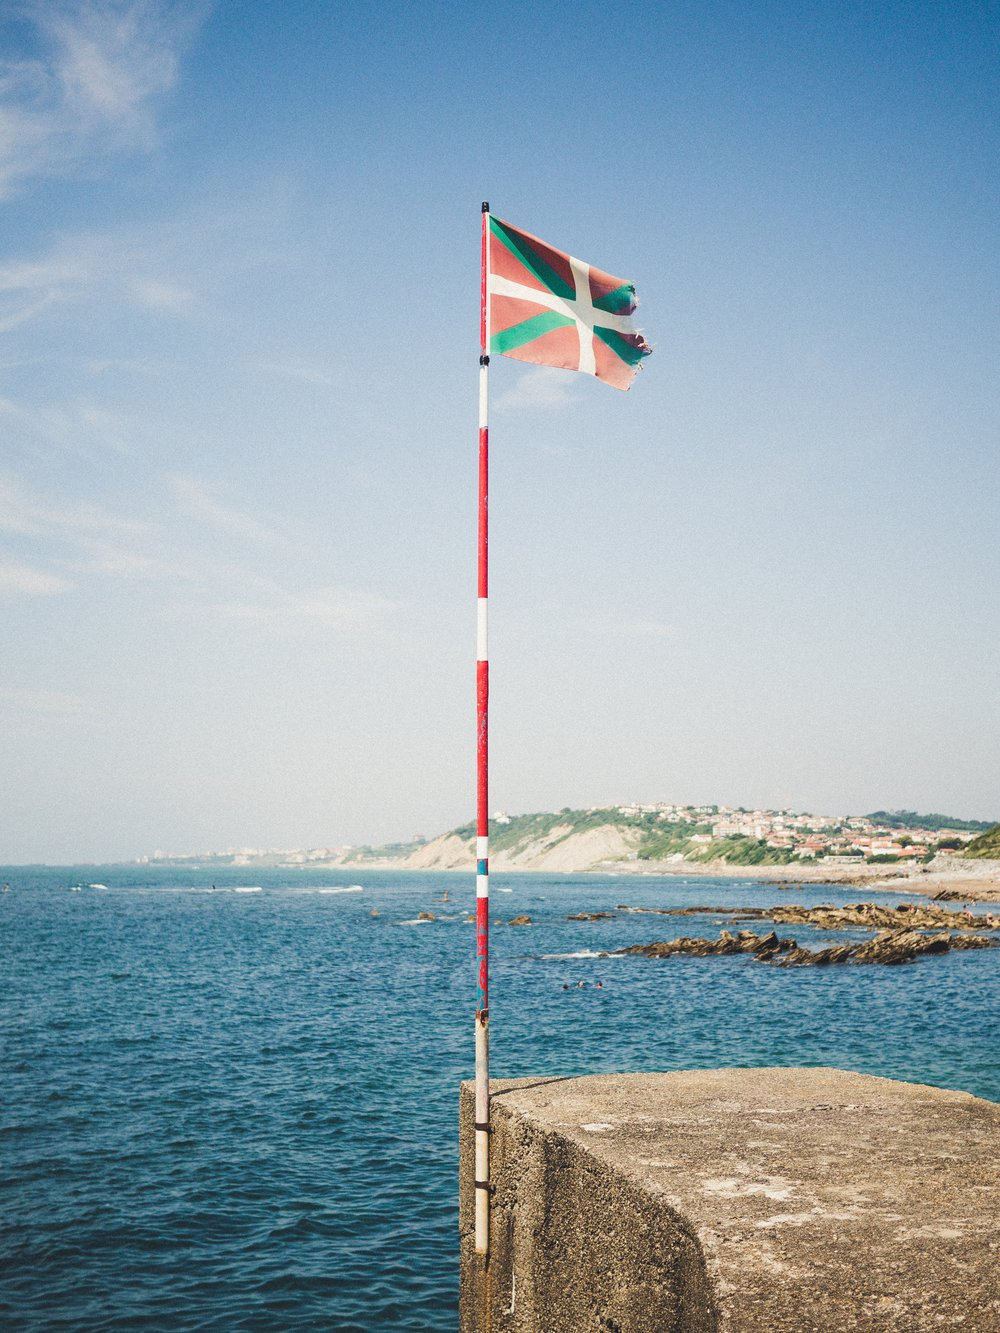 Basque flag. Photo by Joanes Andueza.